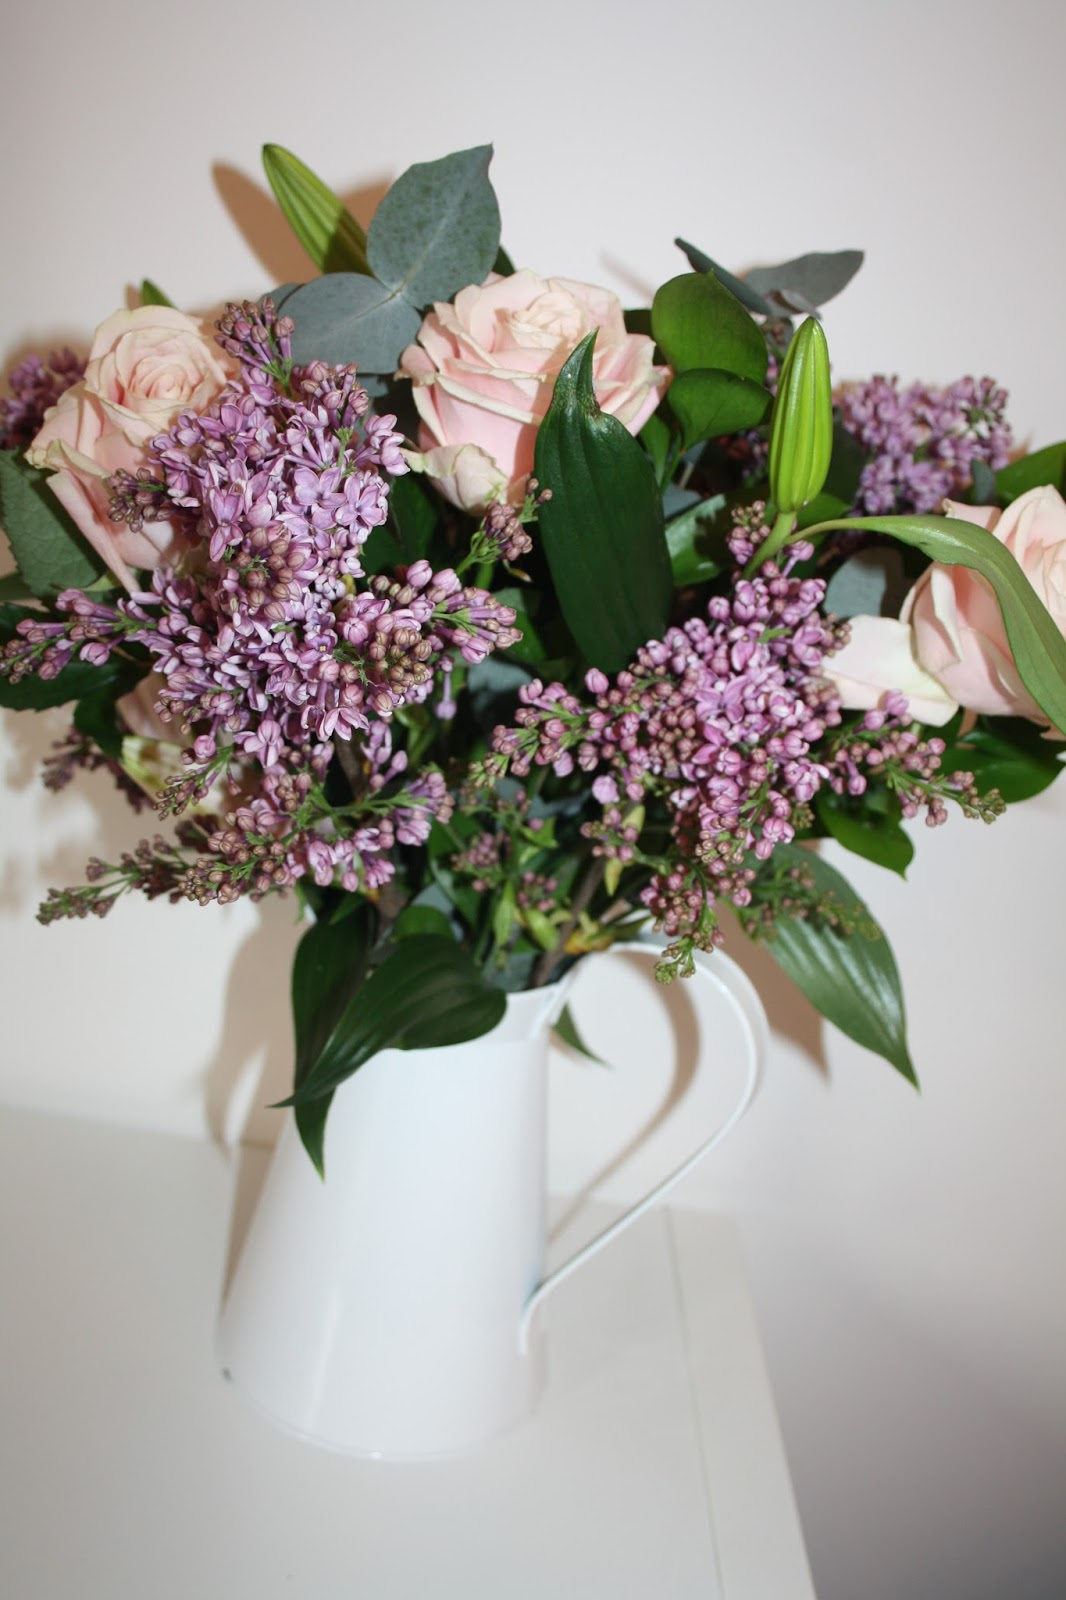 Review Appleyard London Flowers For Mothers Day Pretty Young Thing